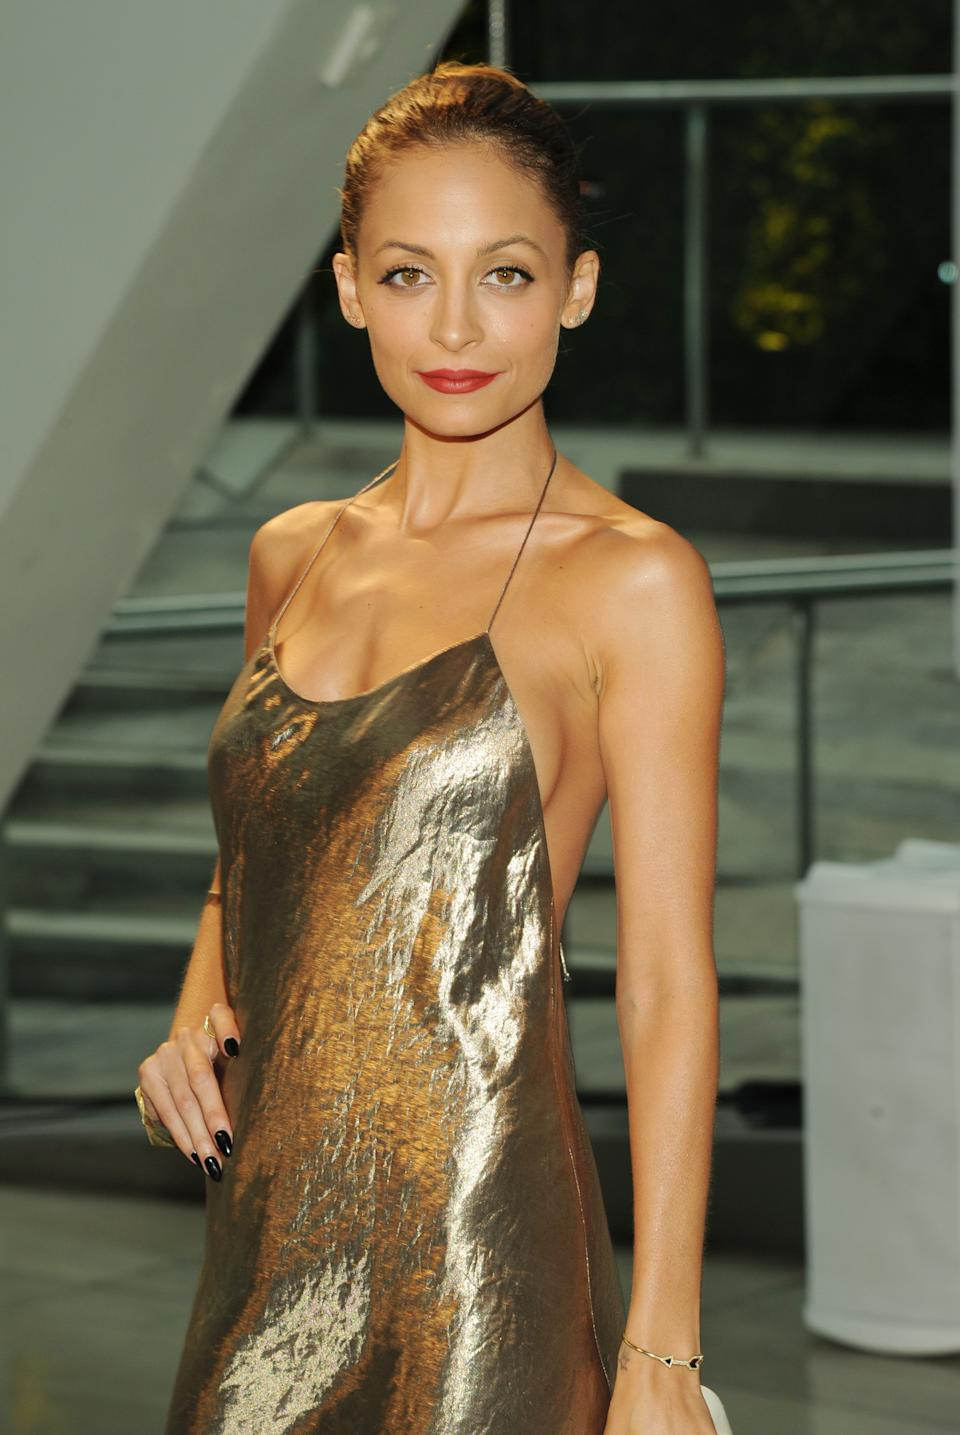 Nicole Richie attends the 2013 CFDA Fashion Awards at Alice Tully Hall on Monday, June 3, 2013 in New York. (Photo by Evan Agostini/Invision/AP)